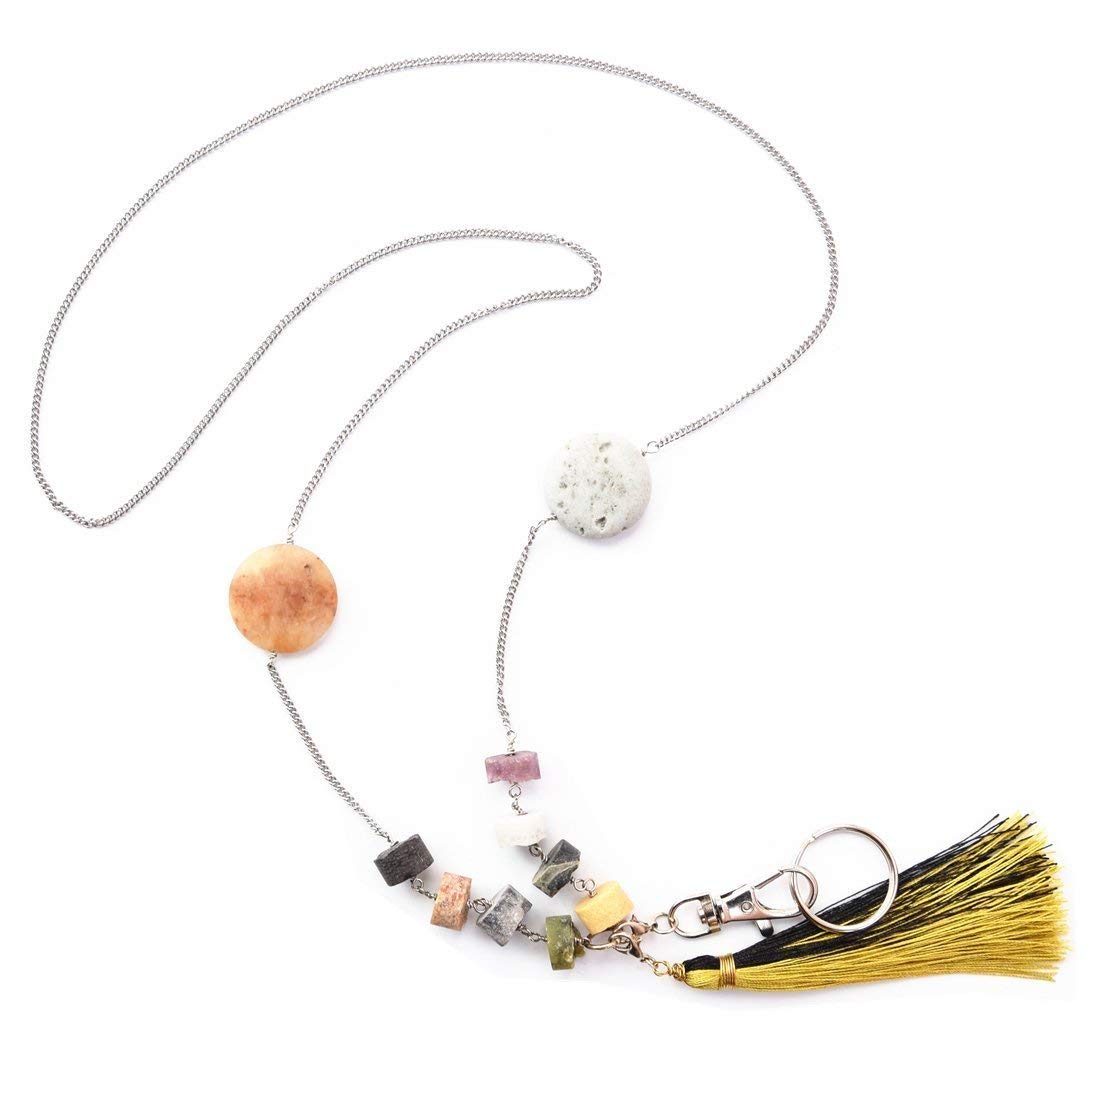 Buy Lanyard for Woman Badge Lanyards Necklace with ID Holder for